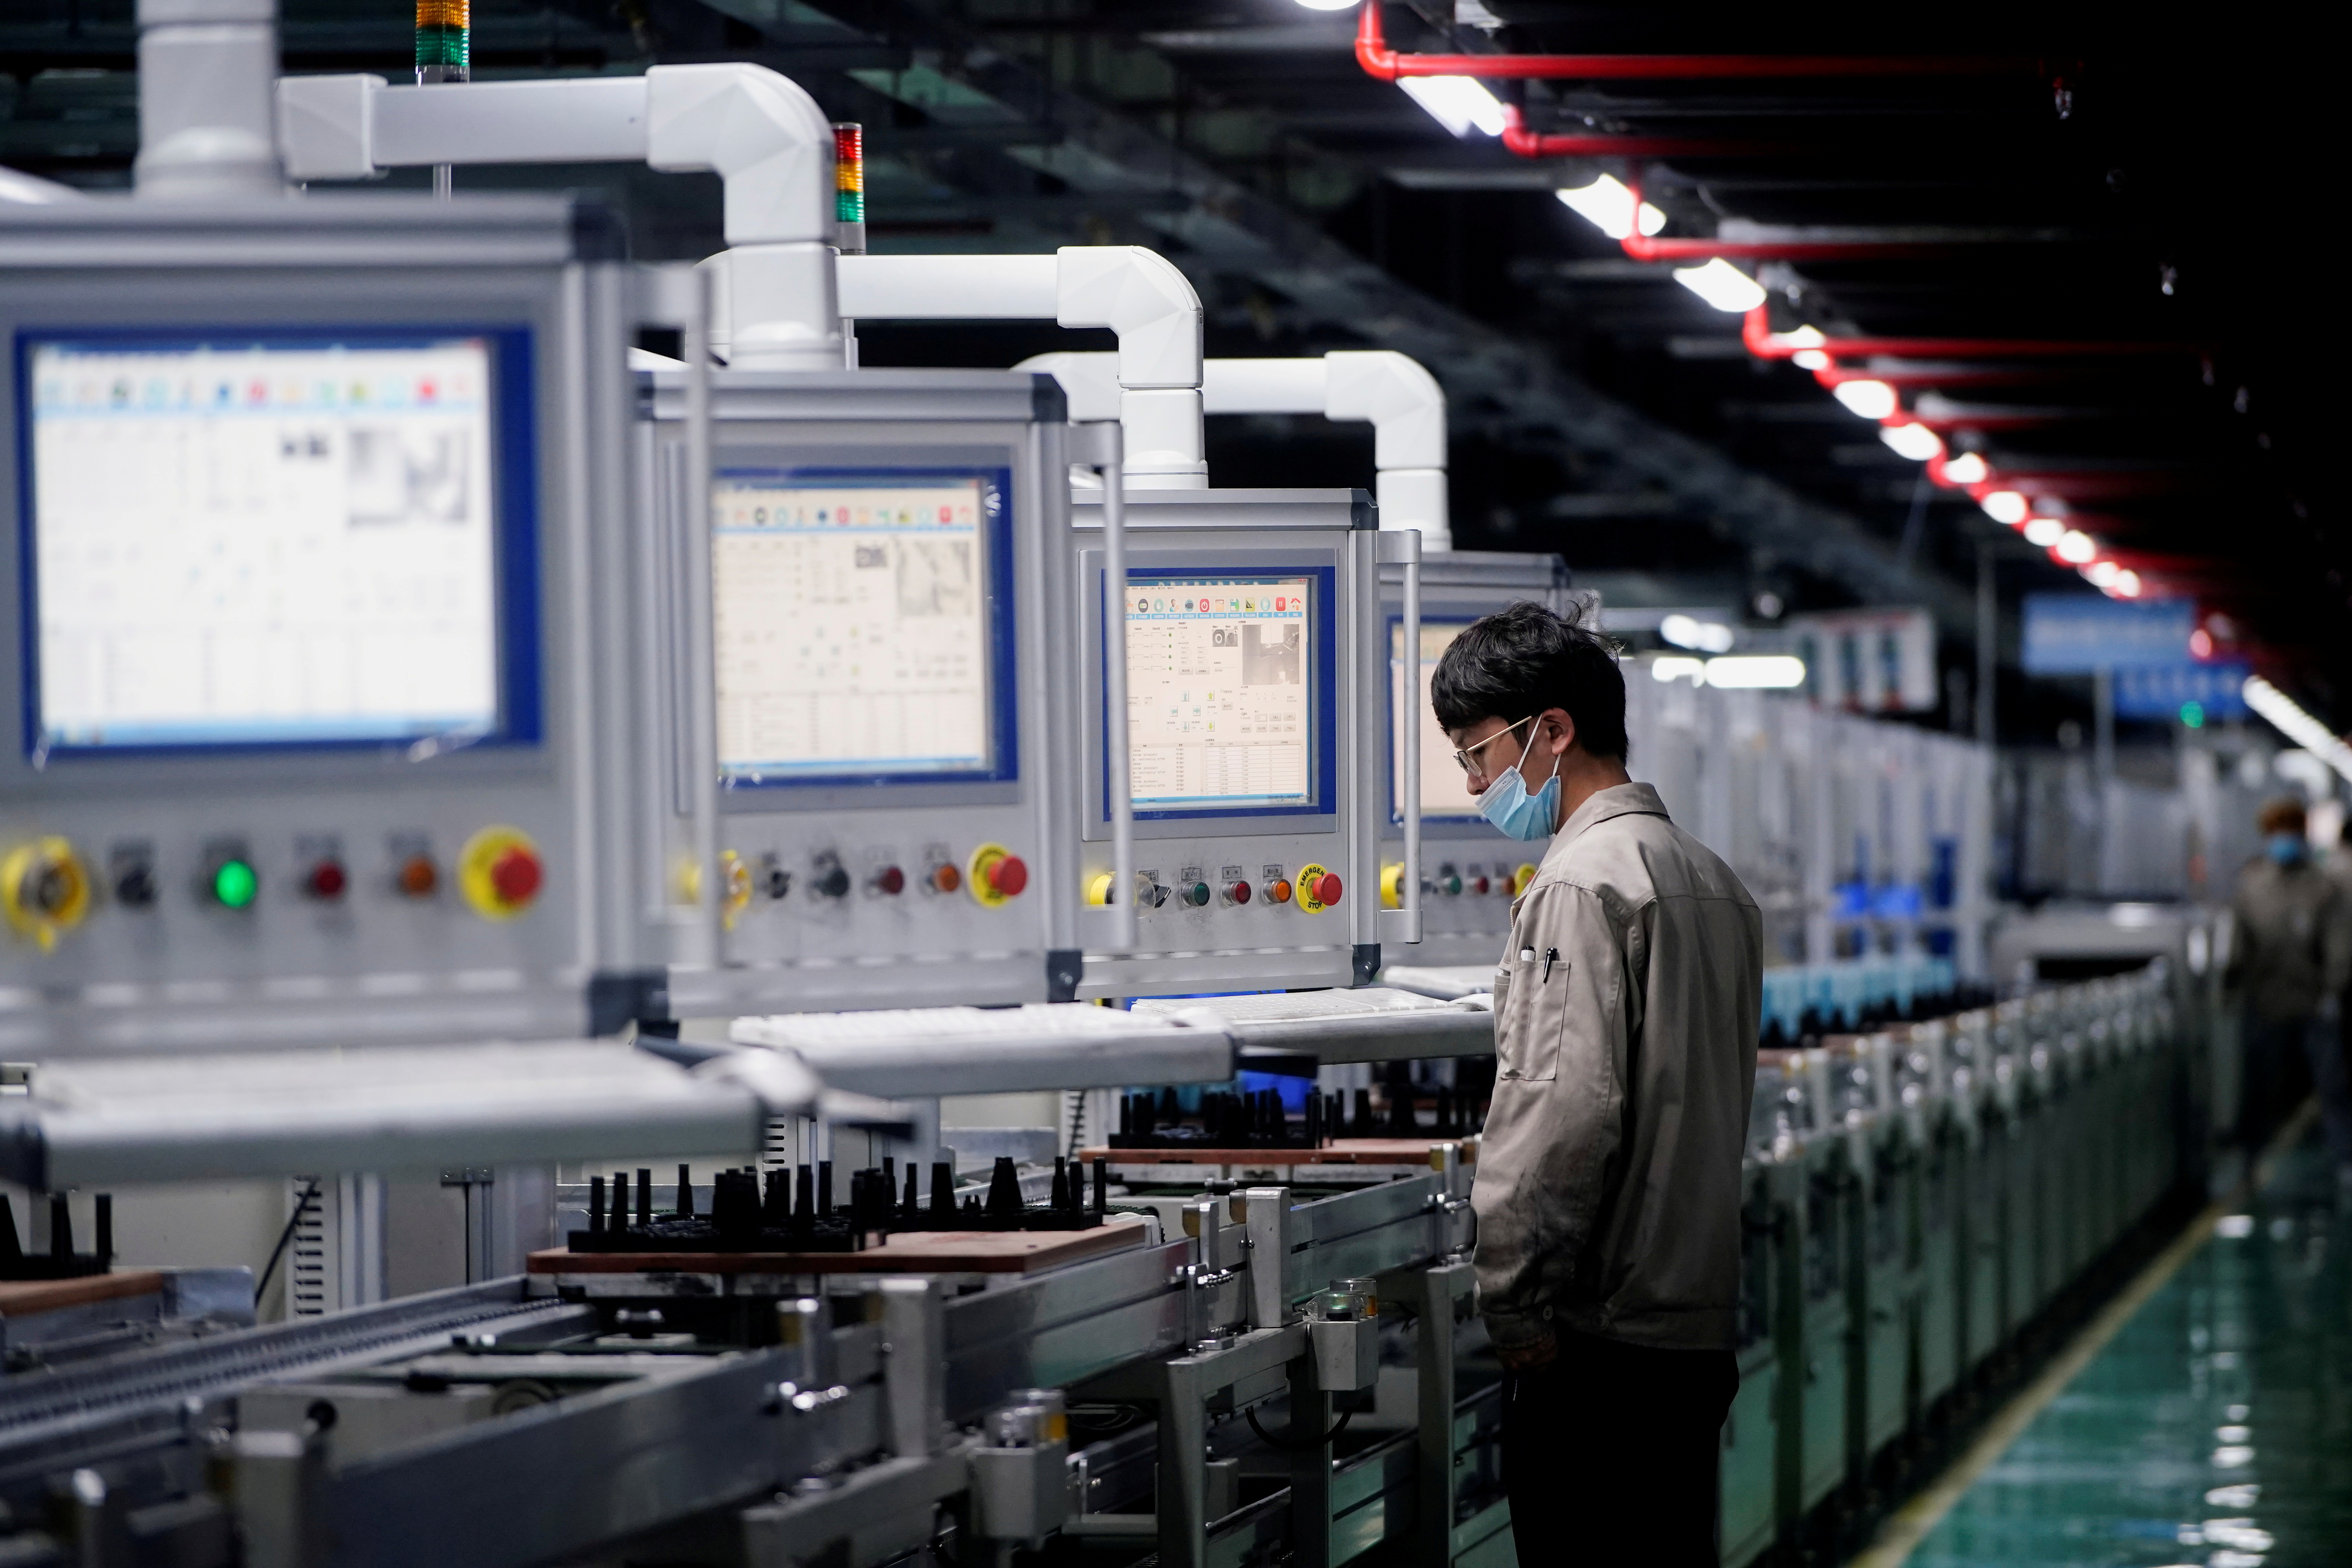 An employee works on the production line of electric vehicle (EV) battery manufacturer Octillion in Hefei, Anhui province, China March 30, 2021. Picture taken March 30, 2021. REUTERS/Aly Song